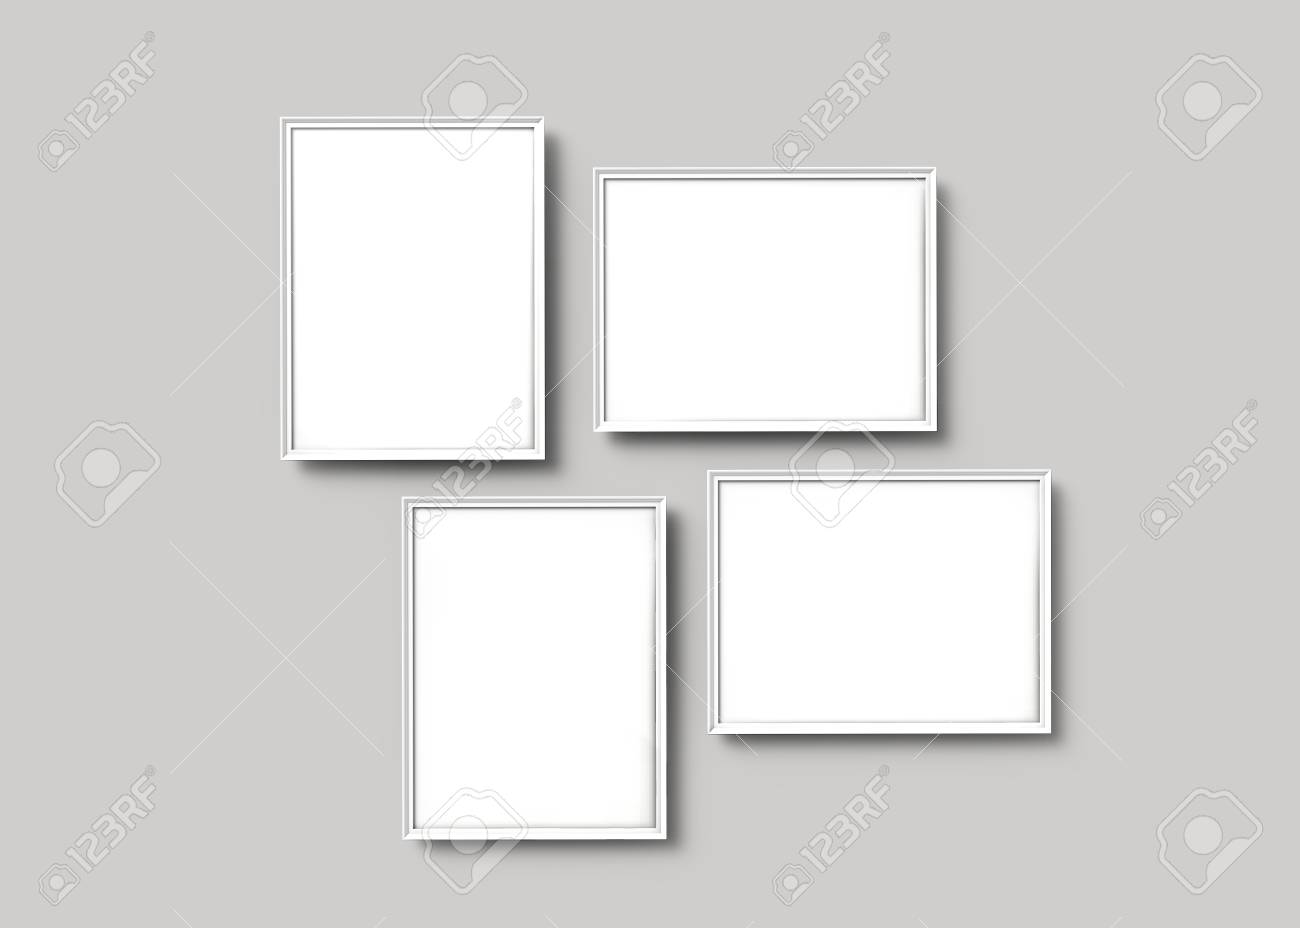 Superieur Stock Photo   White Picture Frames, 3d Render Thin Frames Set With Empty  Space For Decorative Uses